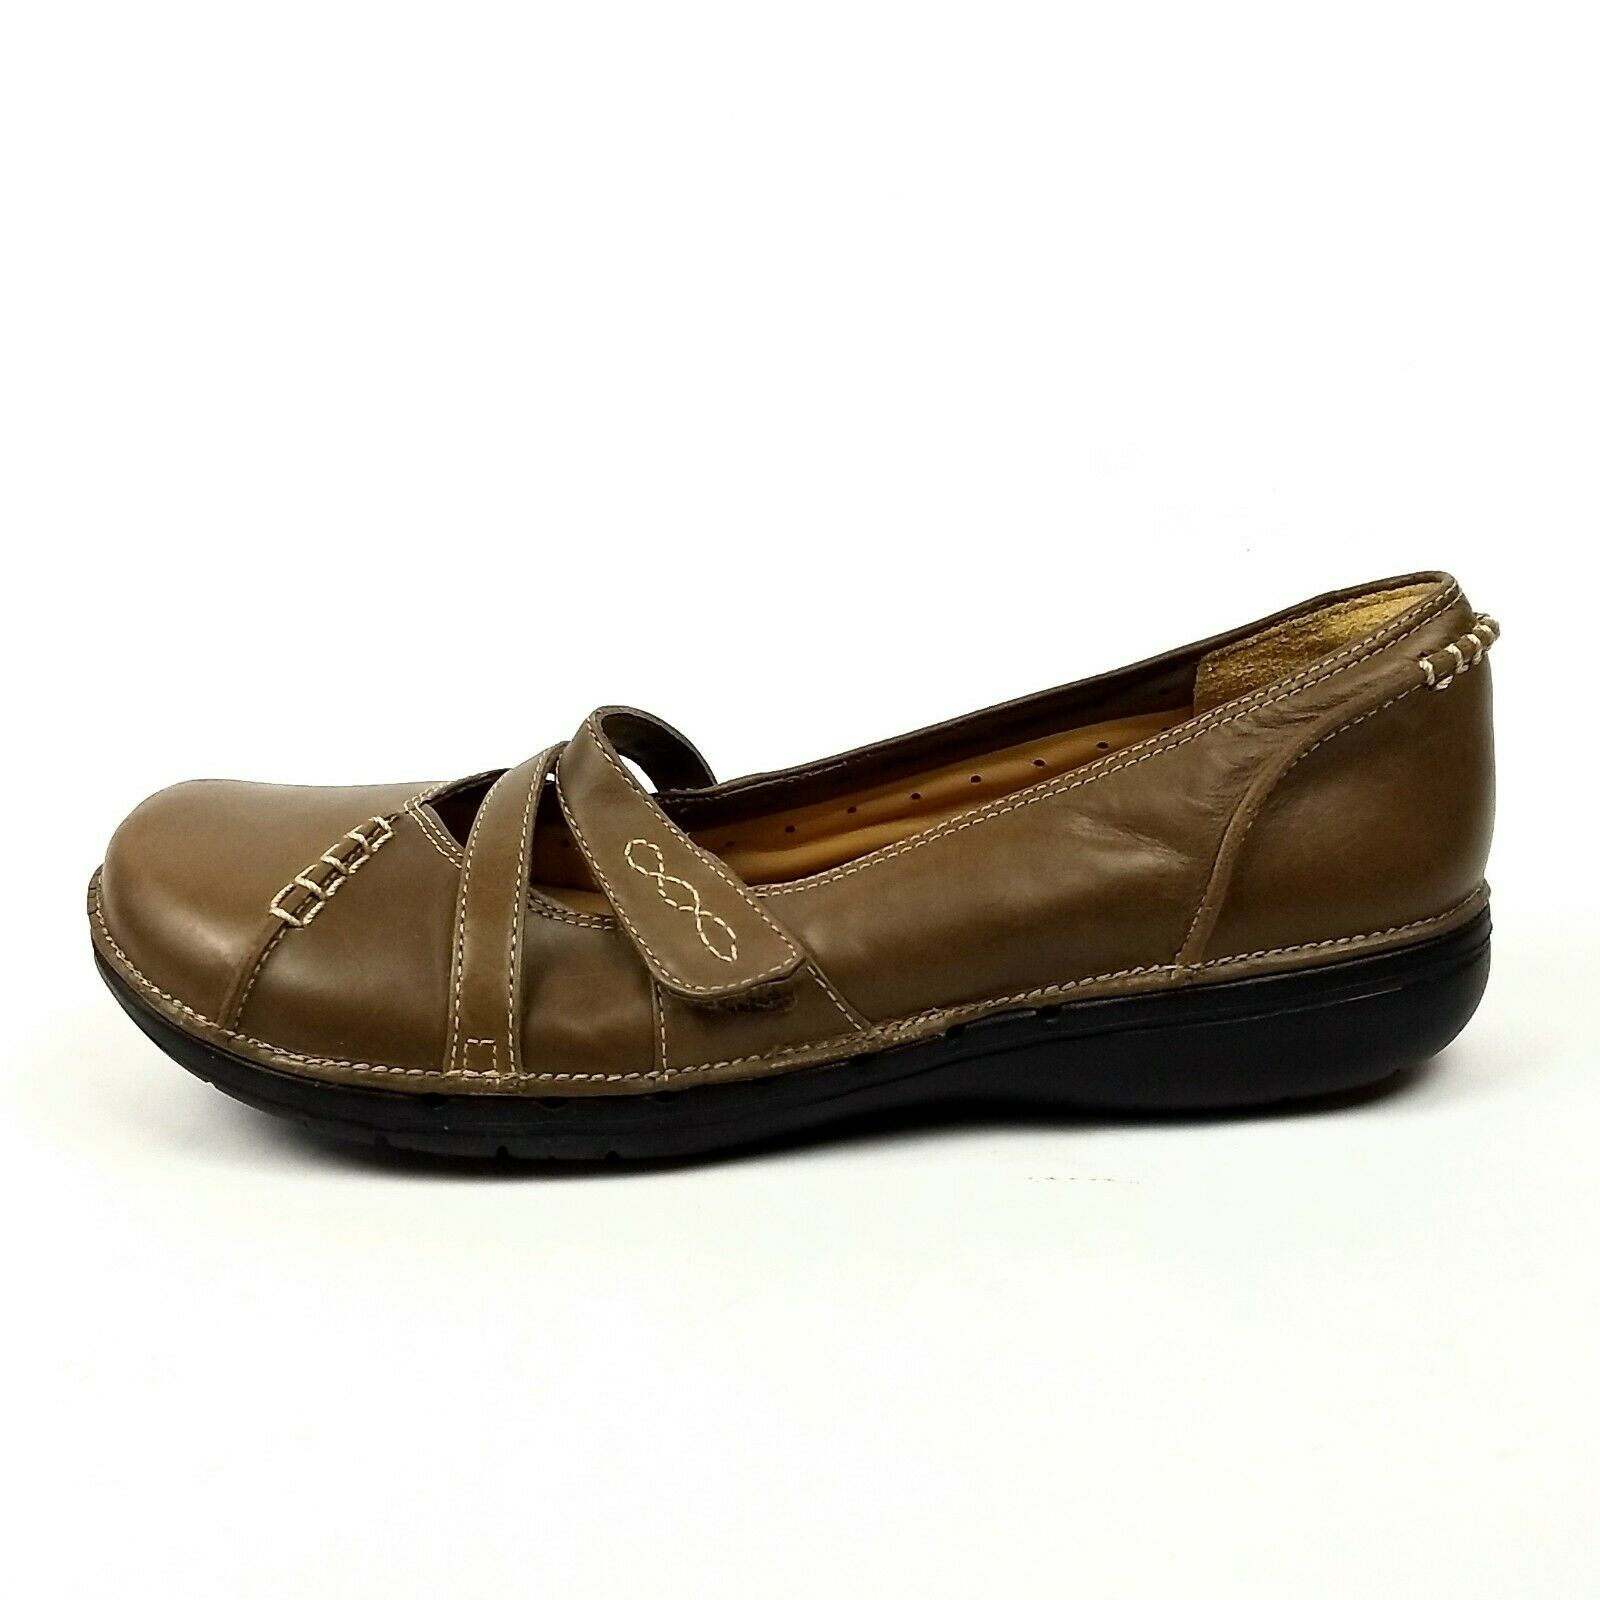 Clarks 61087 Harmony Unstructured Mary Jane Flats Flats Flats Womens Size 7.5M Taupe Leather cc3801